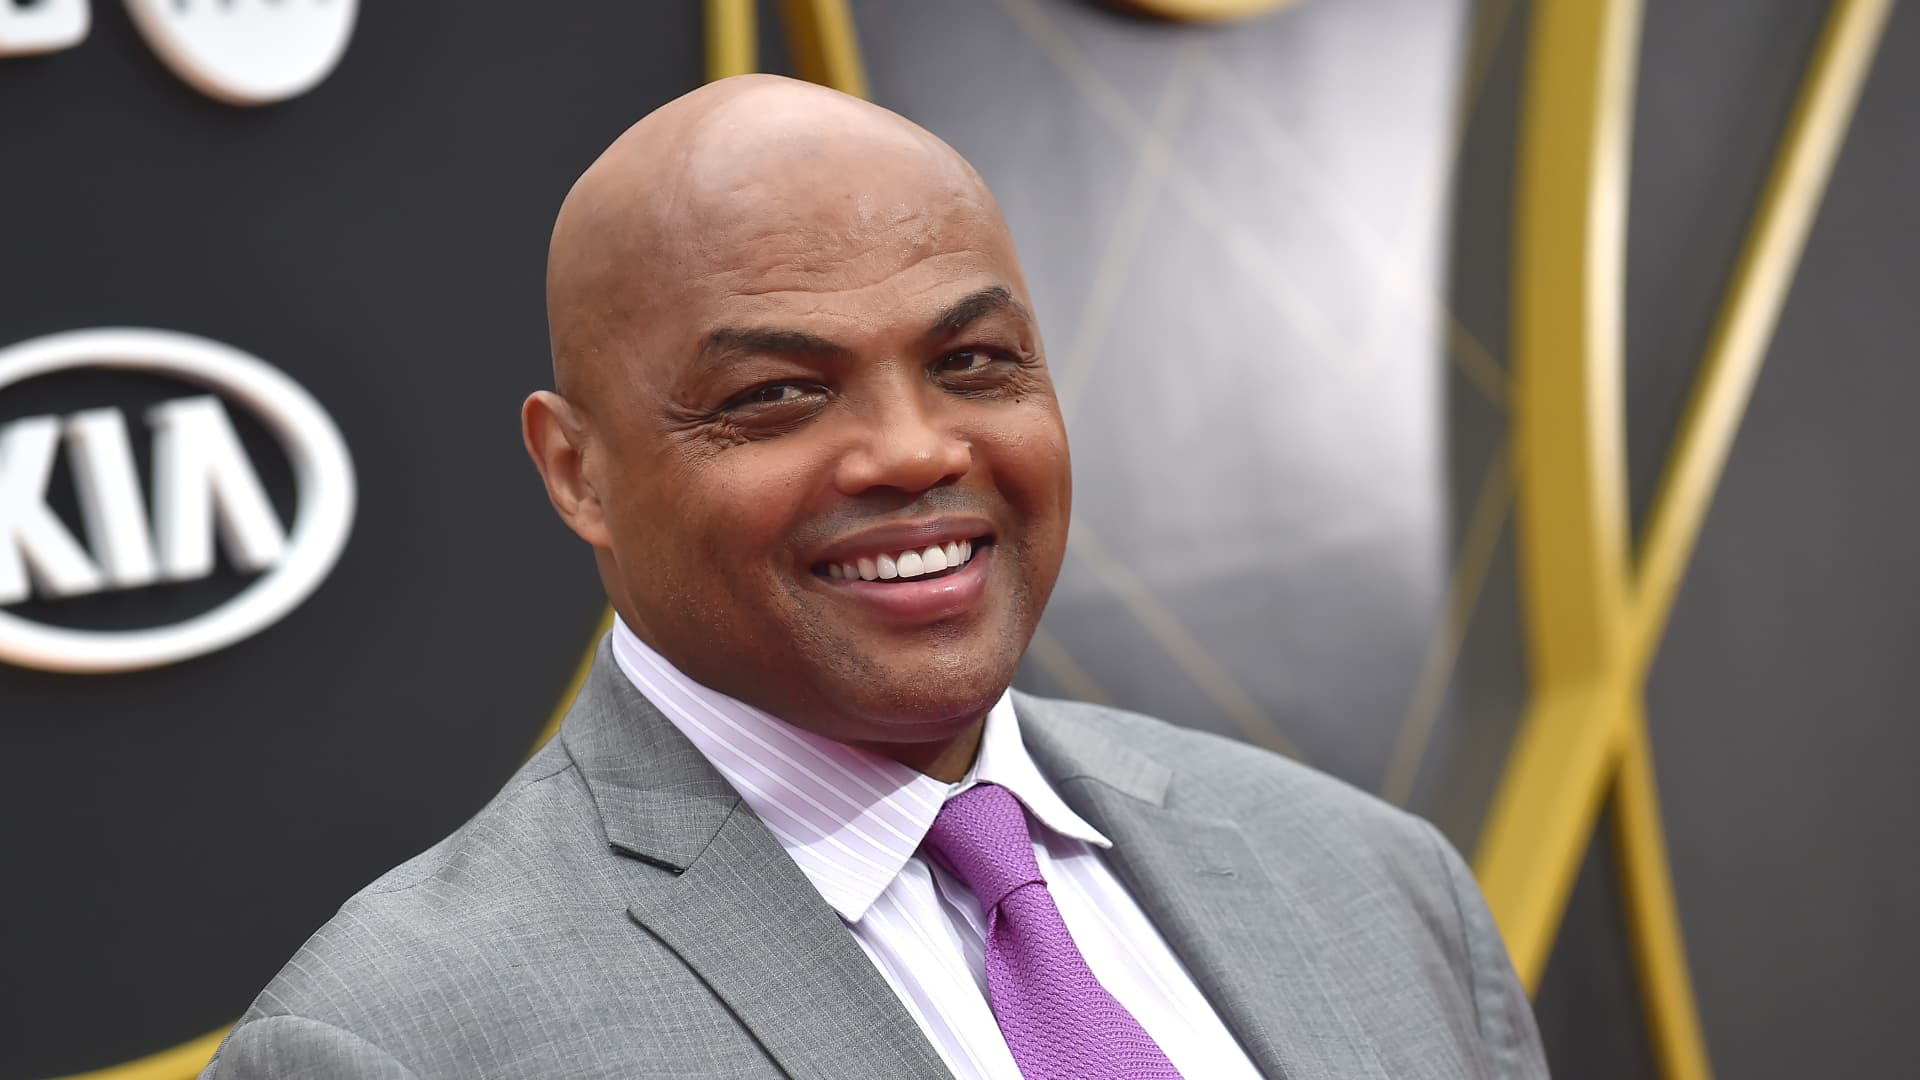 US basketball player Charles Barkley arrives for the 2019 NBA Awards at Barker Hangar on June 24, 2019 in Santa Monica, California.